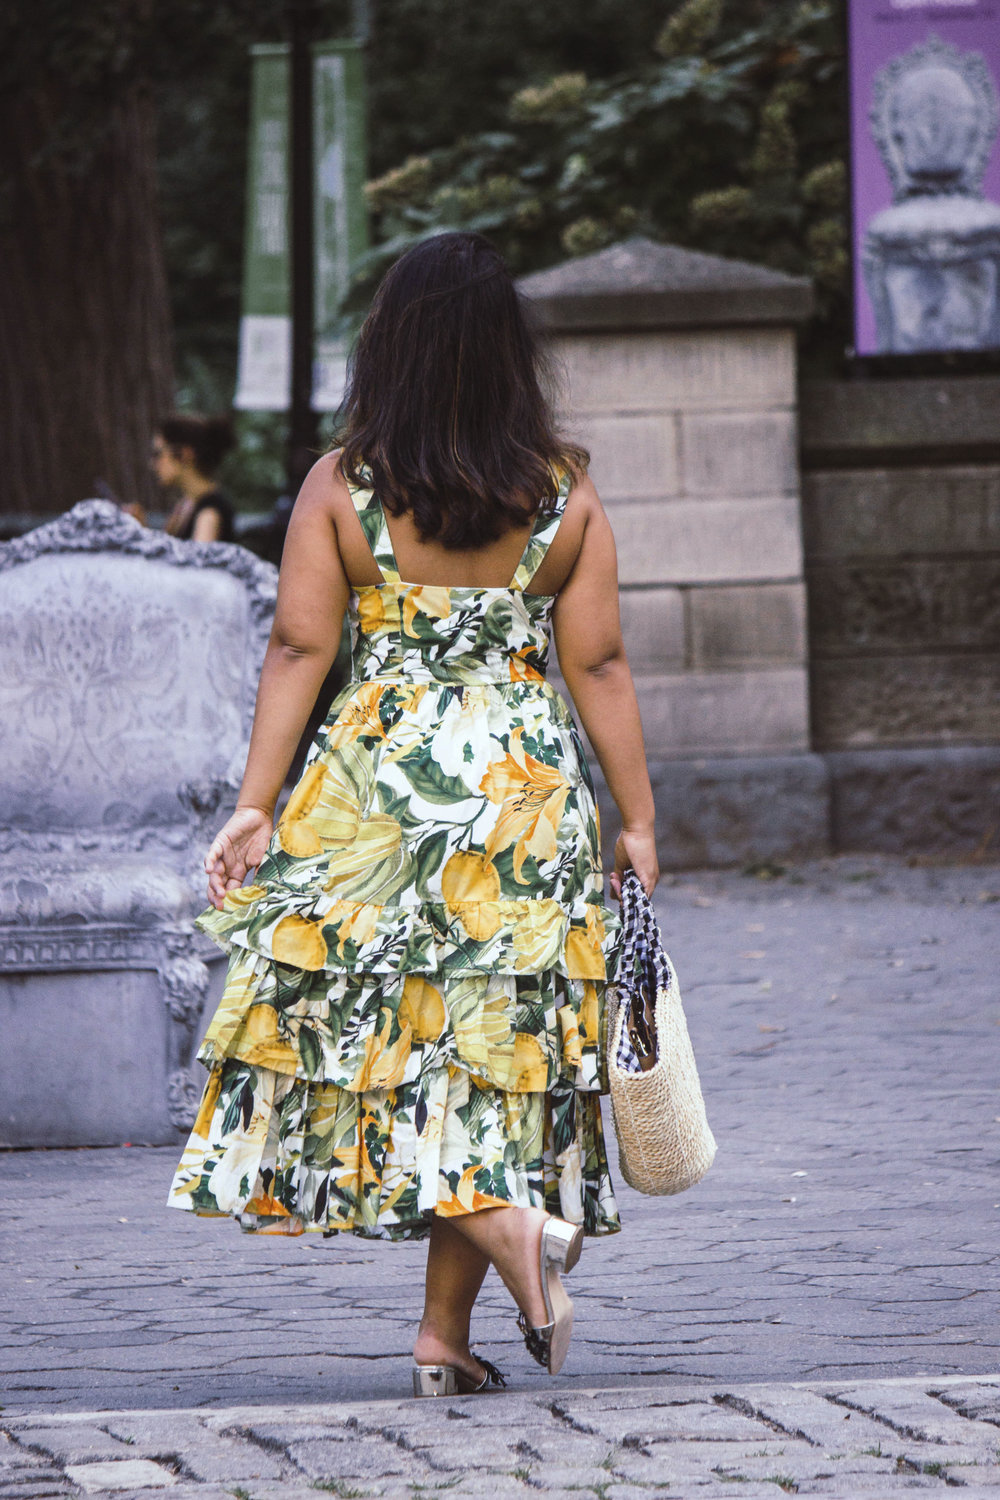 Lemon Print Dress H&M Krity S